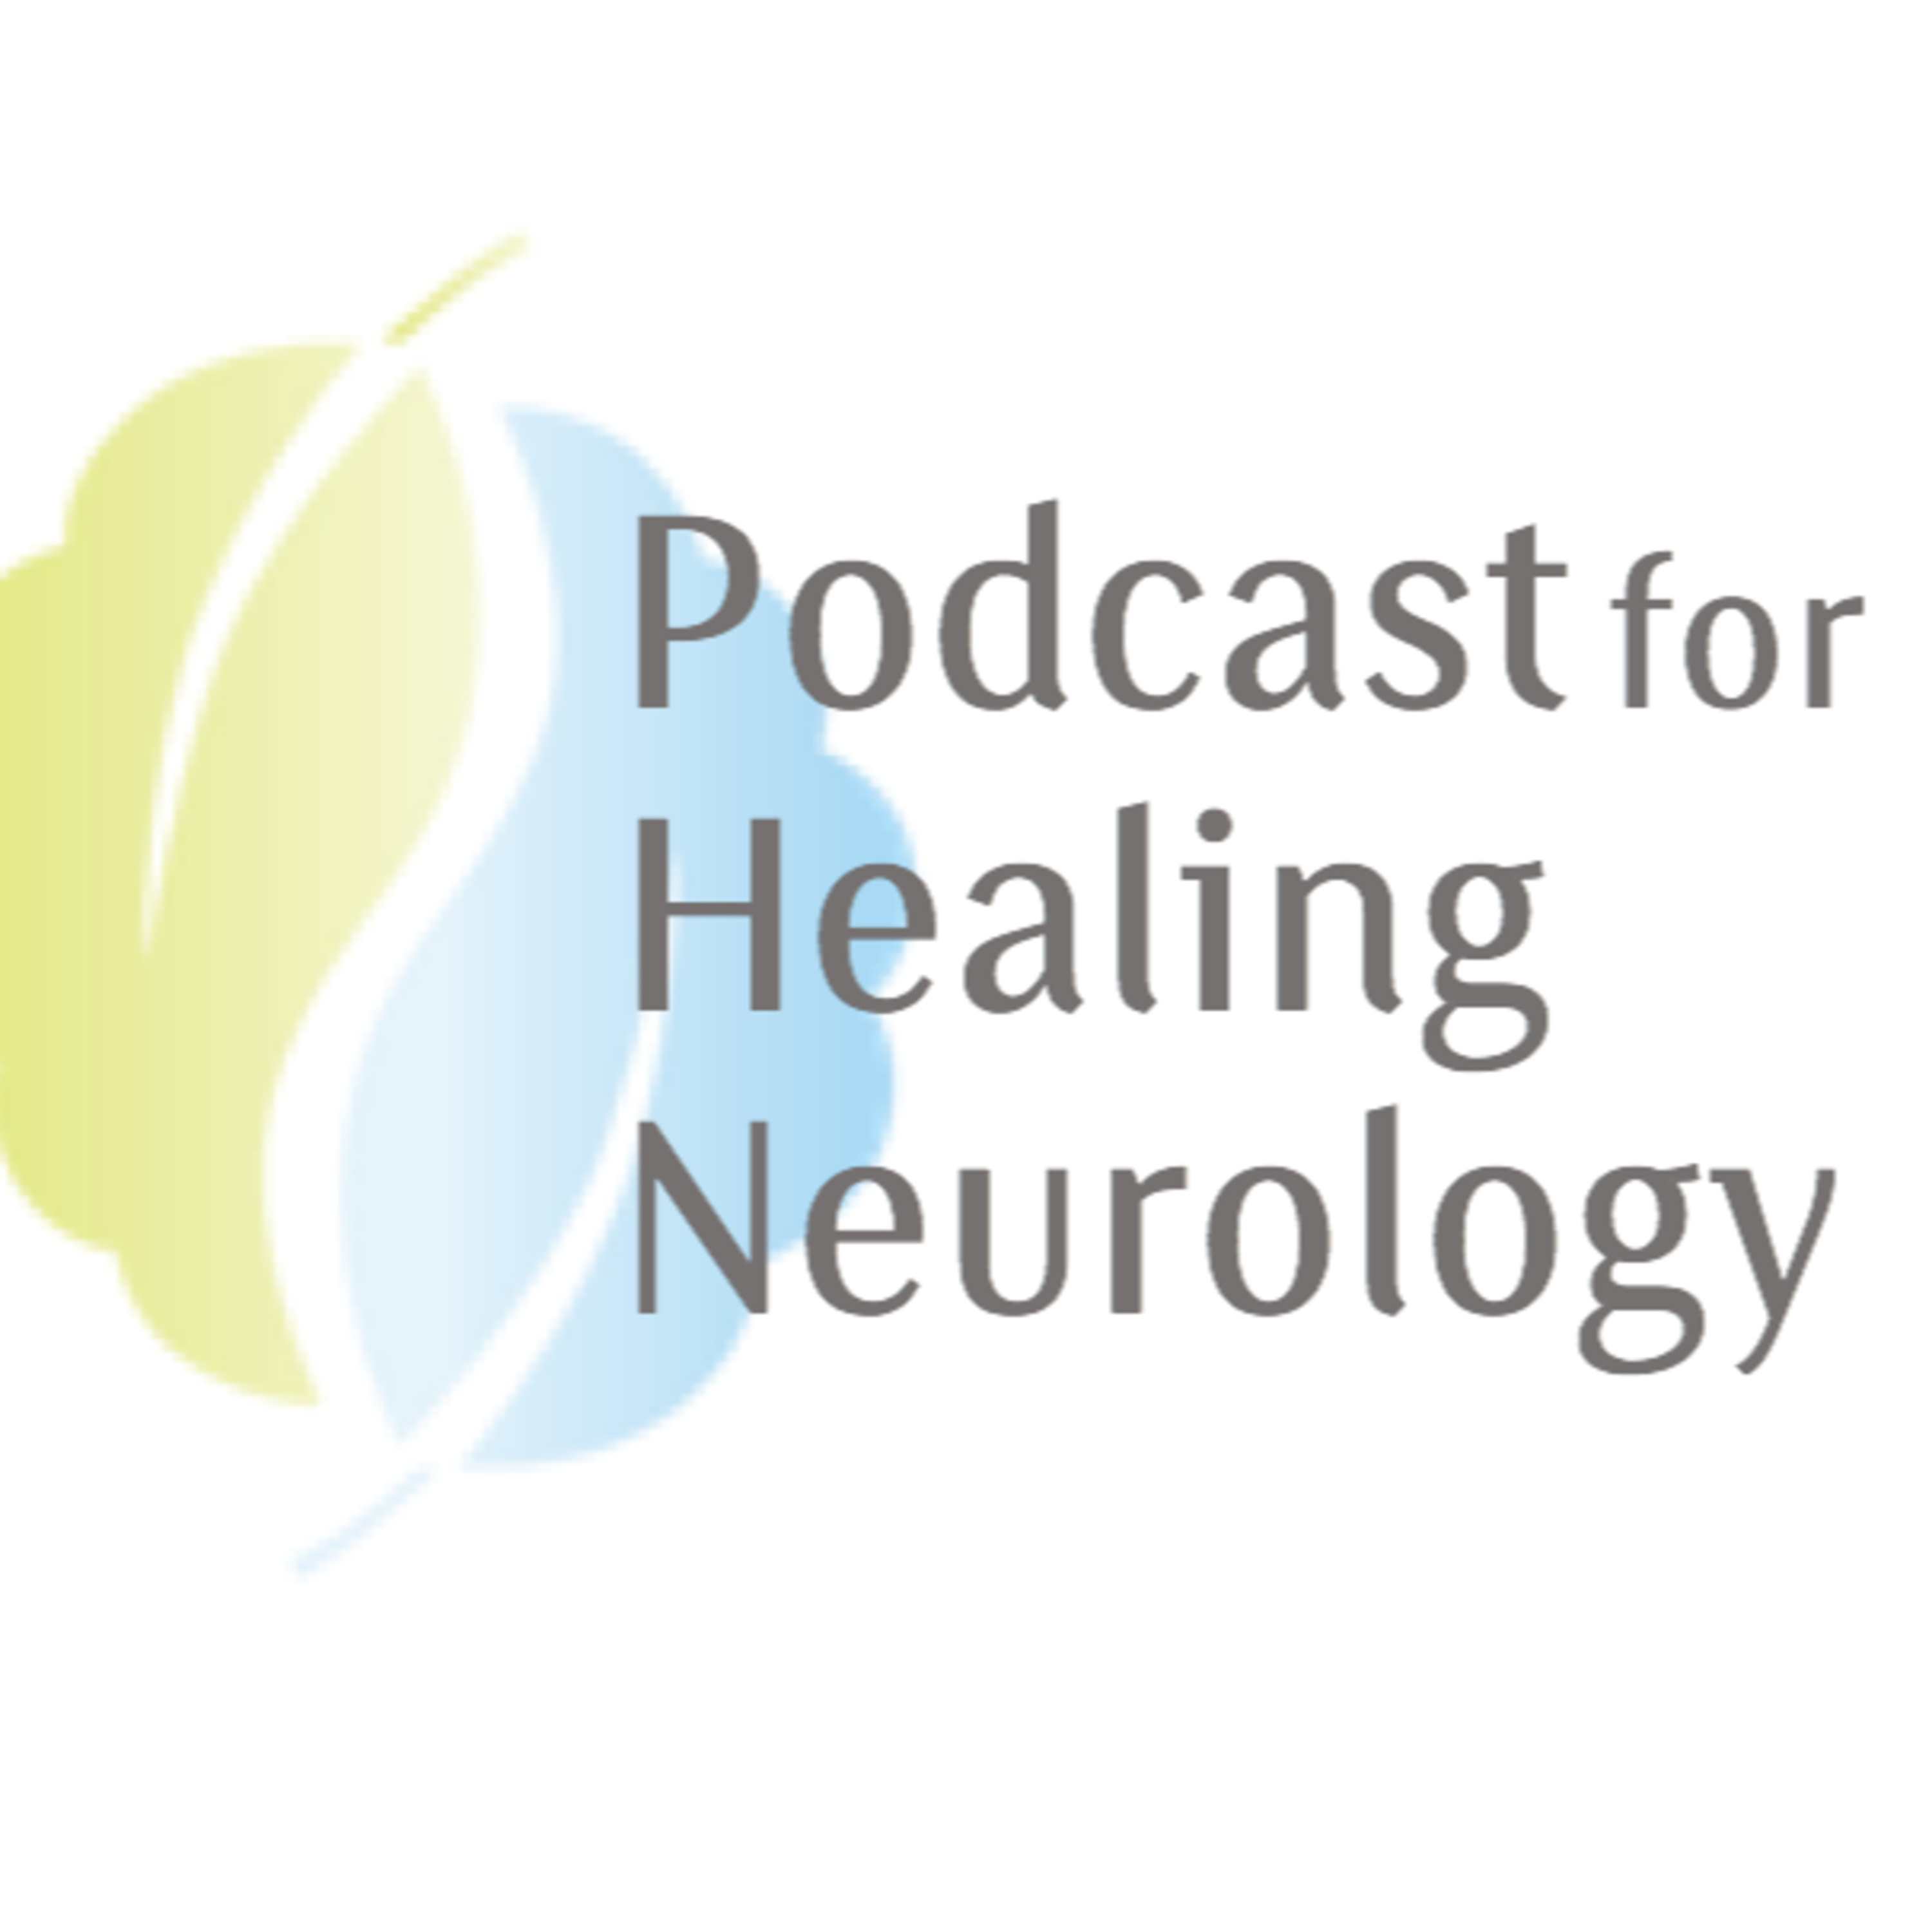 Coming Soon: Podcast for Healing Neurology